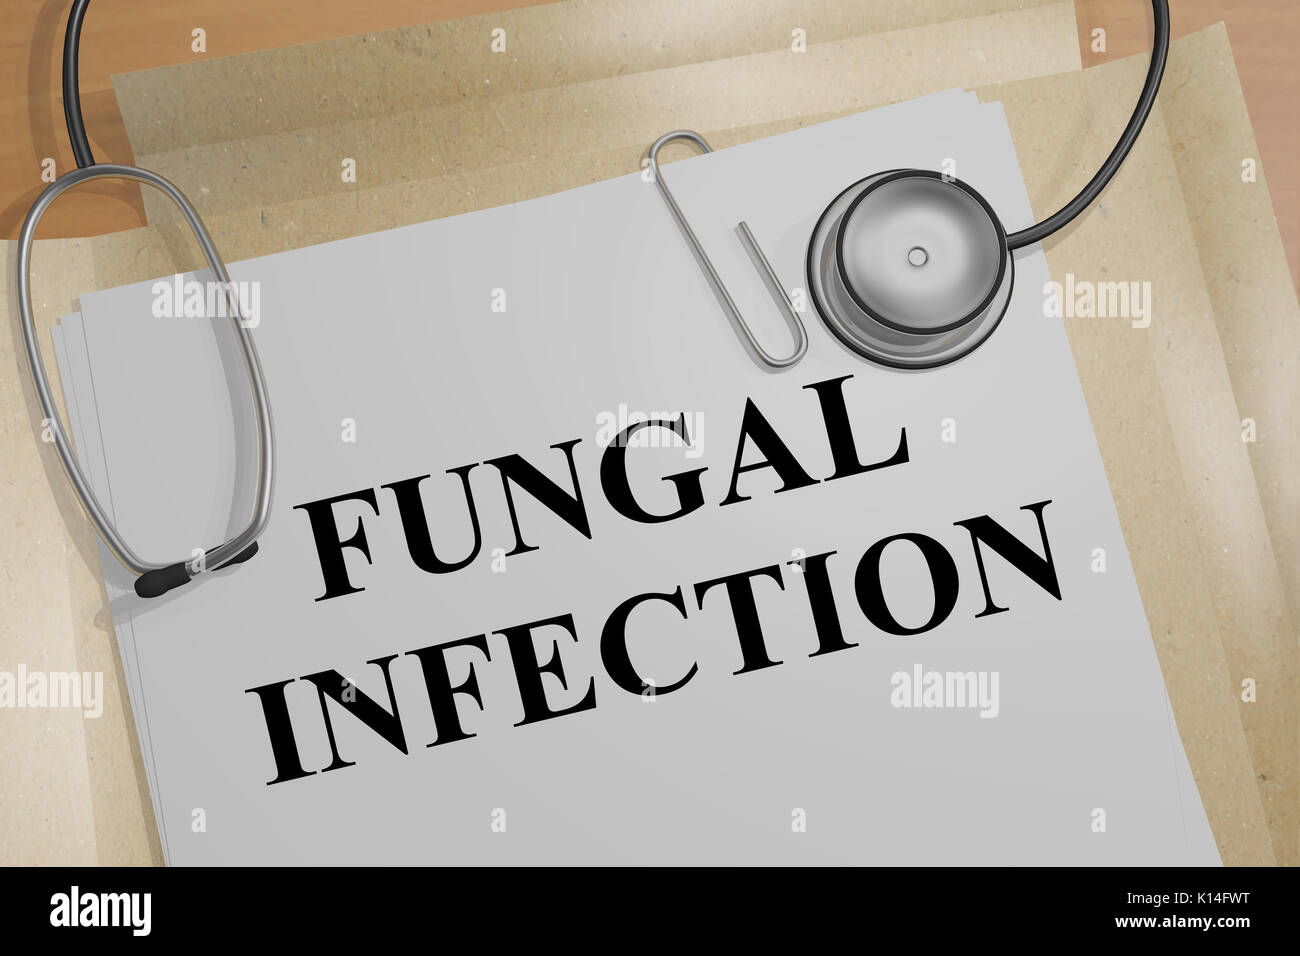 Fungal Infection Stock Photos Amp Fungal Infection Stock